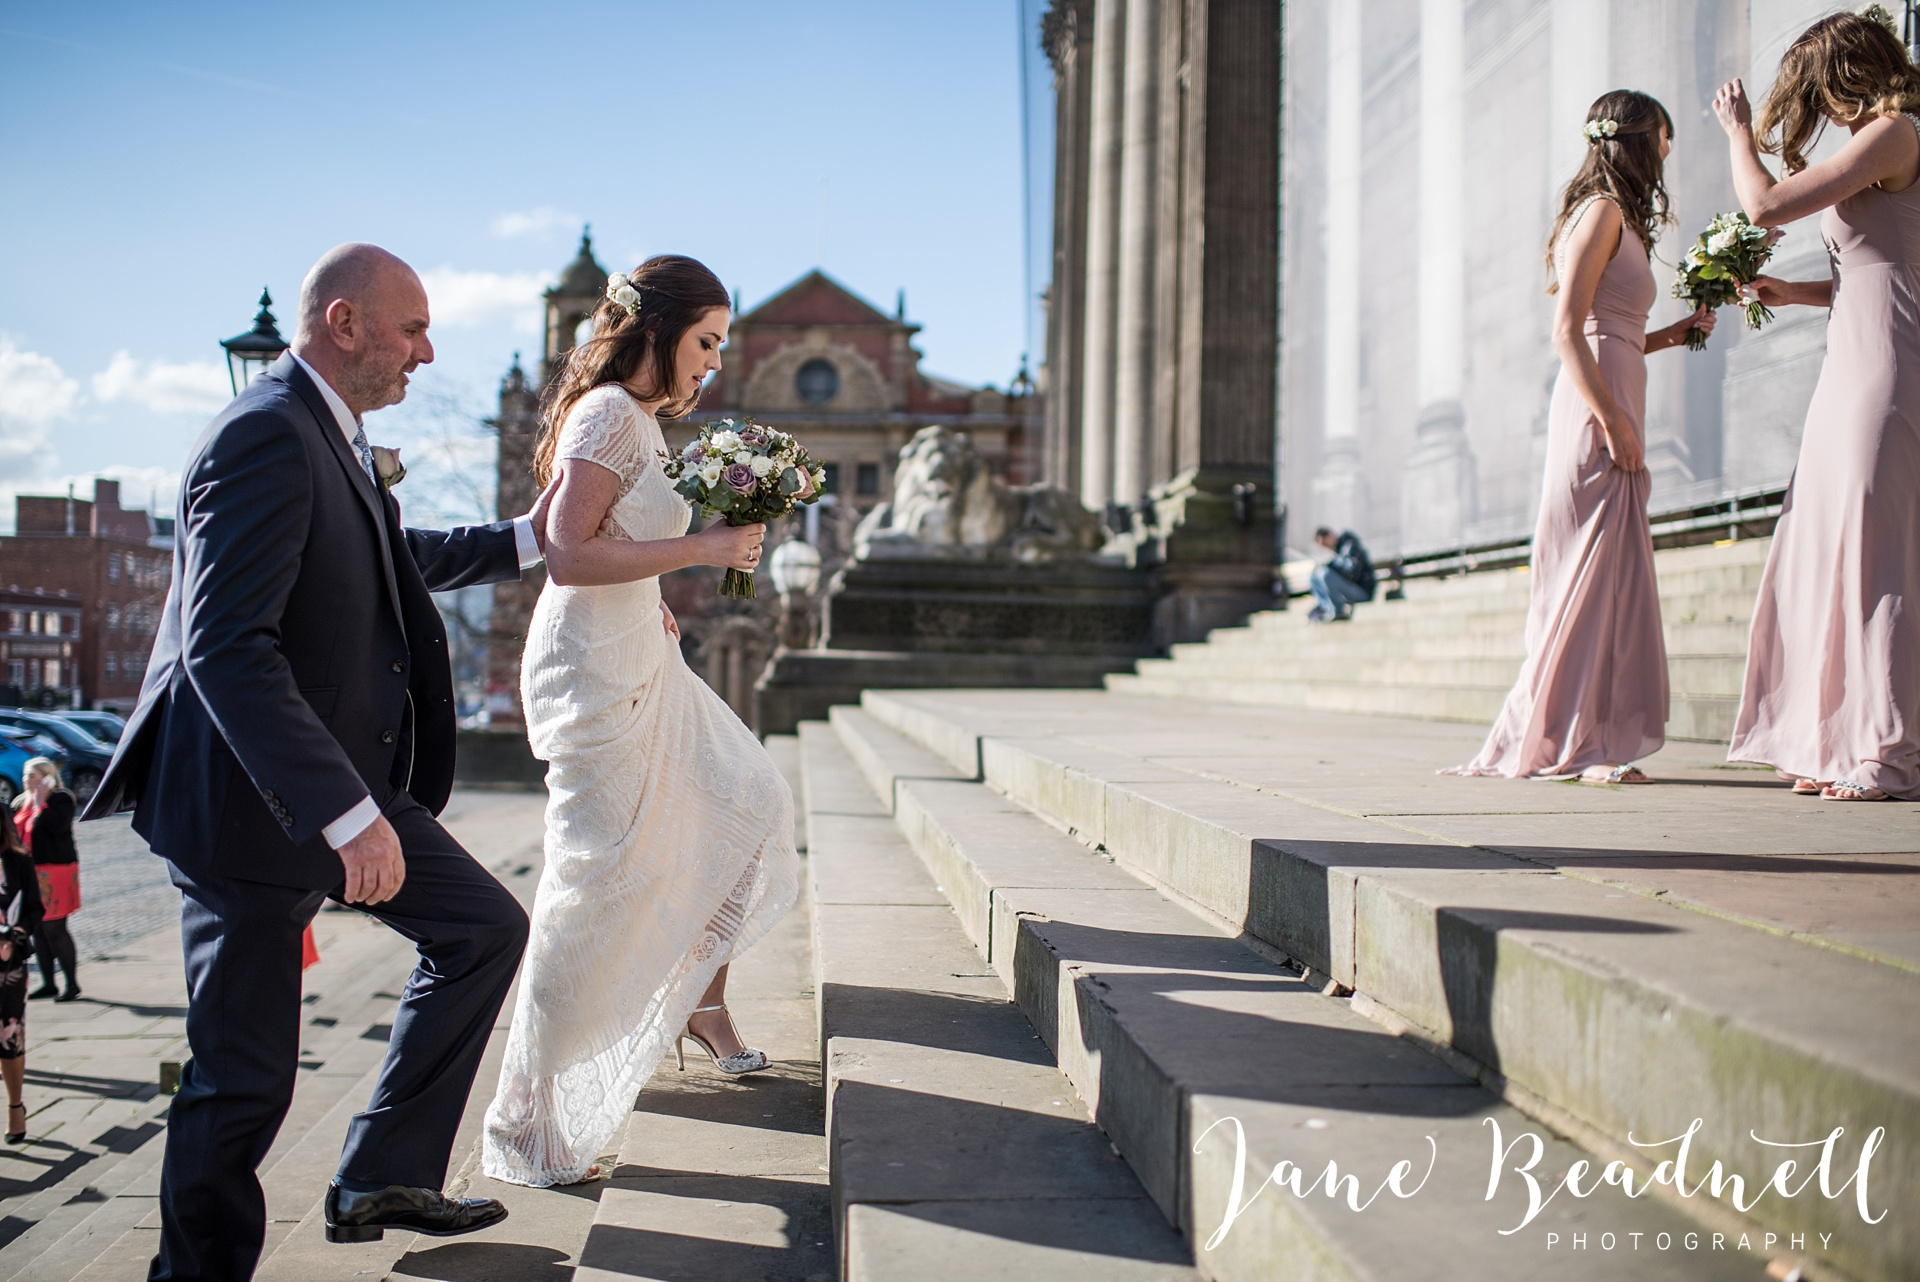 Wedding photography Cross Keys Leeds Wedding Jane Beadnell Photography_0018